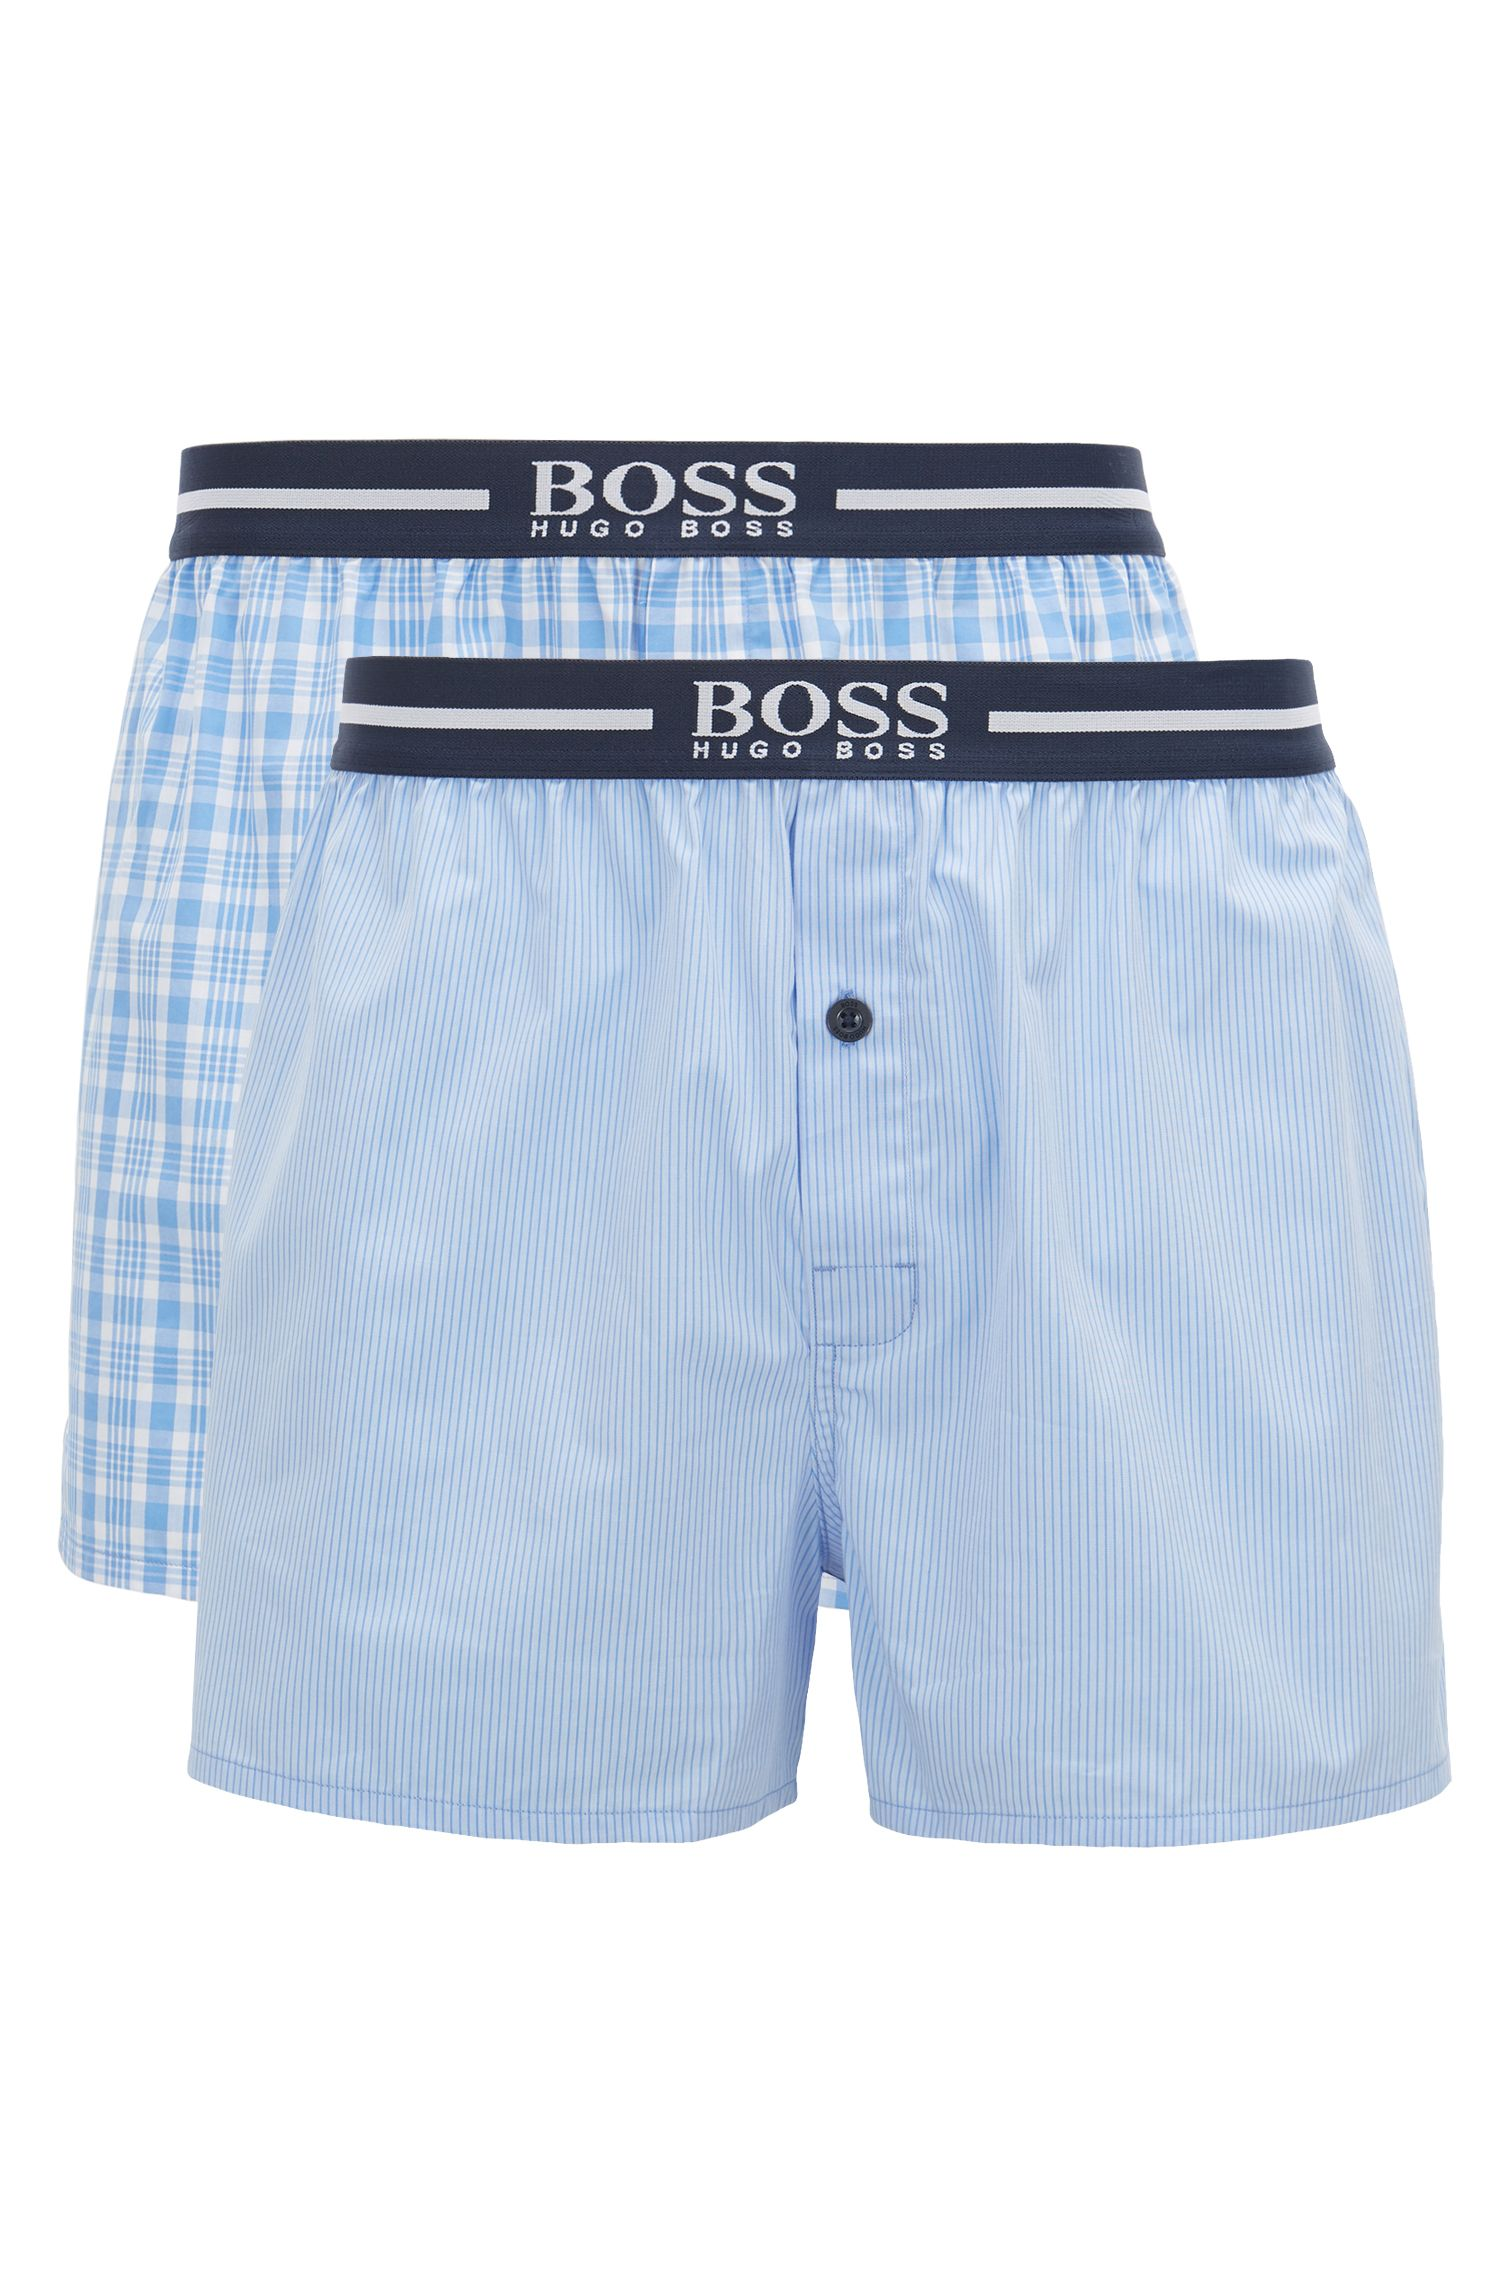 Hugo Boss - Two-pack of pyjama shorts in woven cotton poplin - 1